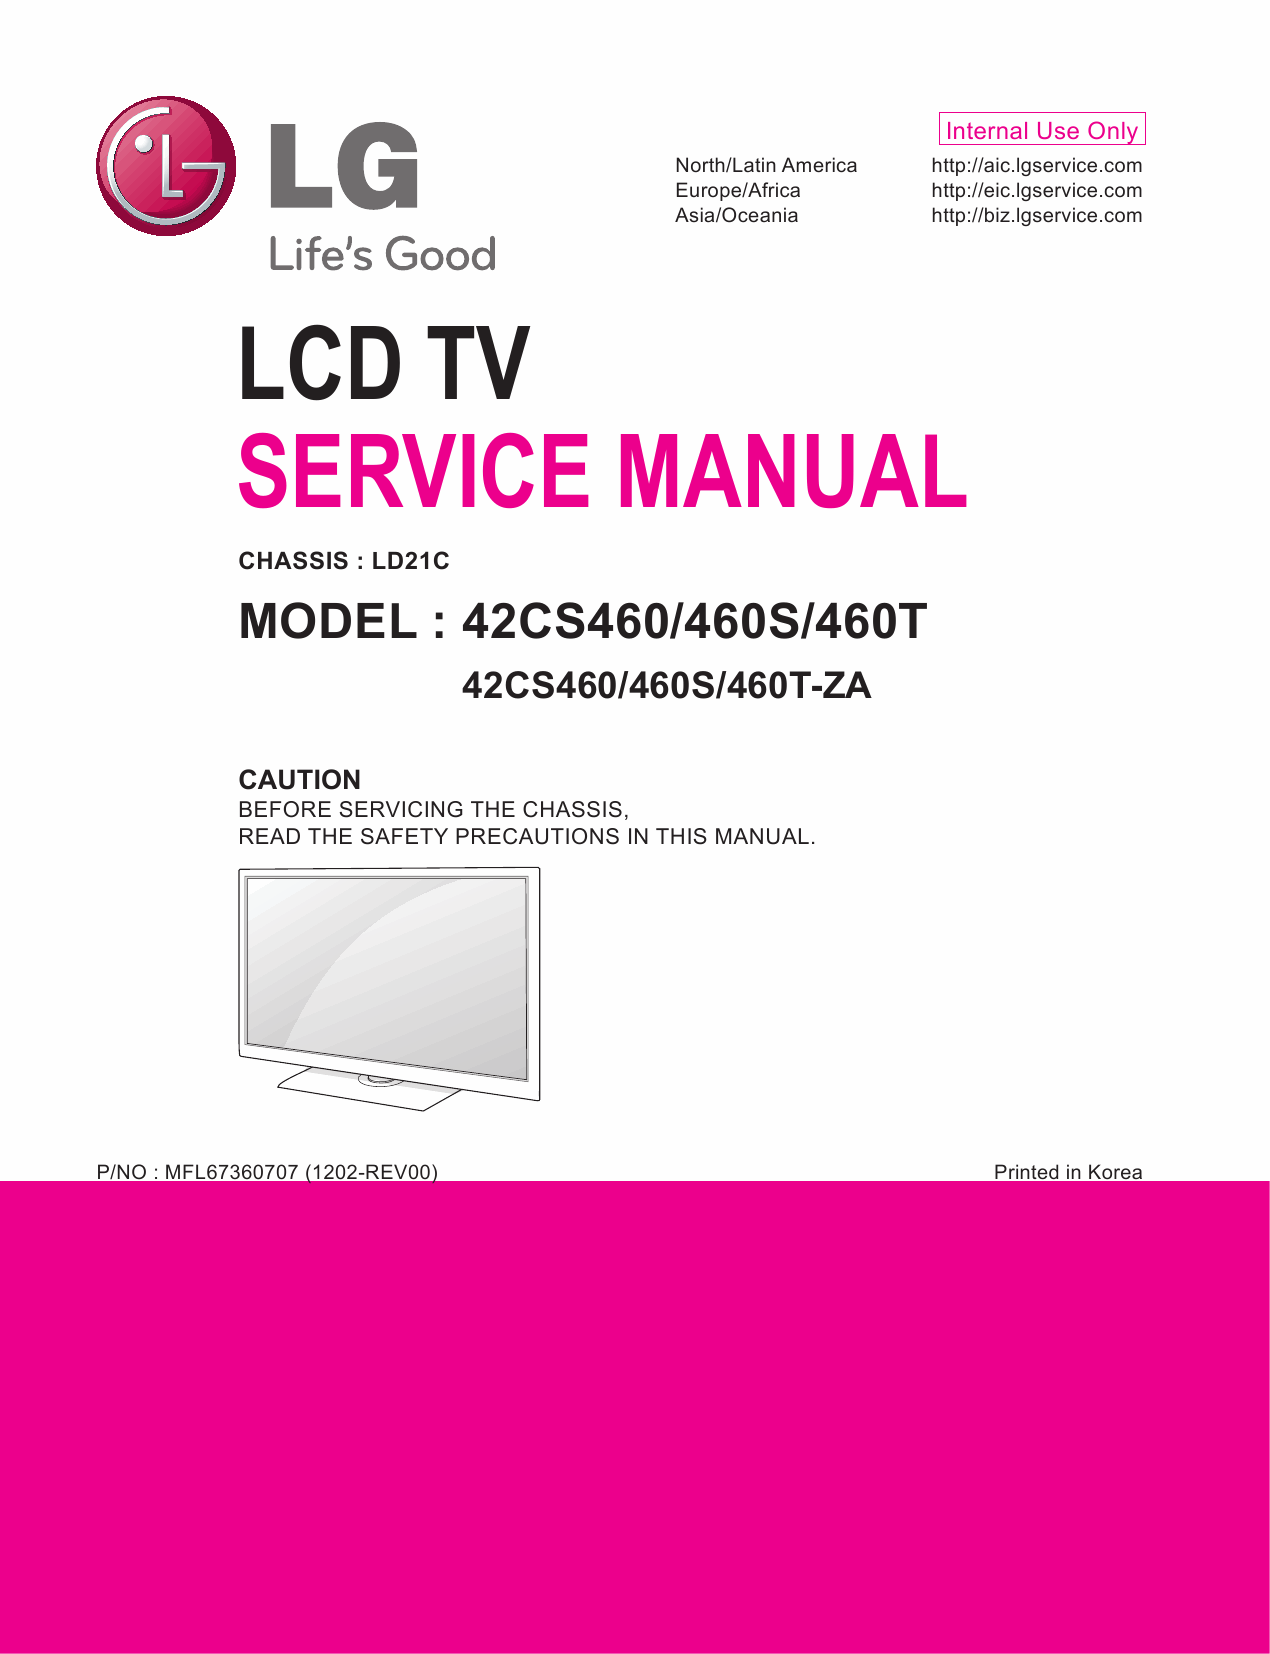 LG_LCD_TV_42CS460_460S_460T_Service_Manual_2012_Qmanual.com-1